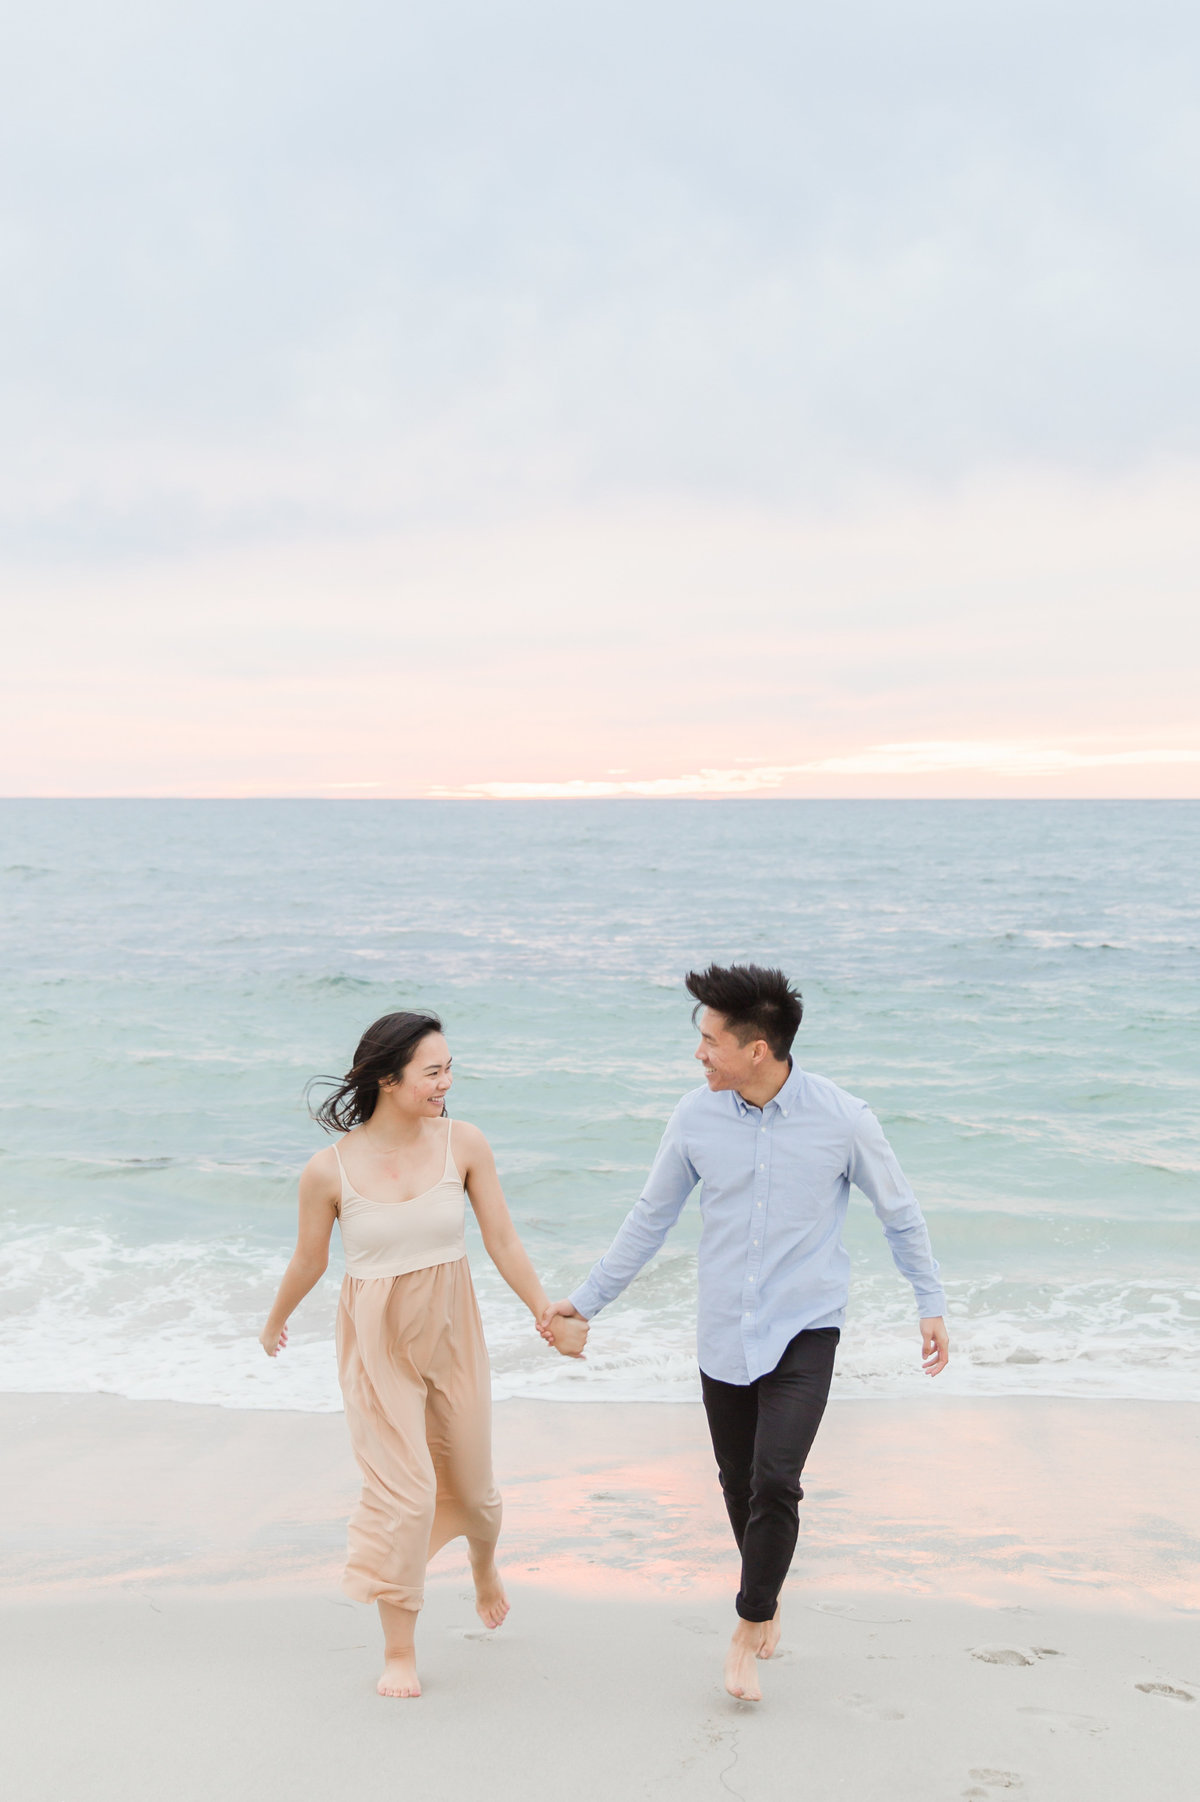 babsie-ly-photography-surprise-proposal-photographer-san-diego-california-la-jolla-windansea-beach-scenery-asian-couple-007